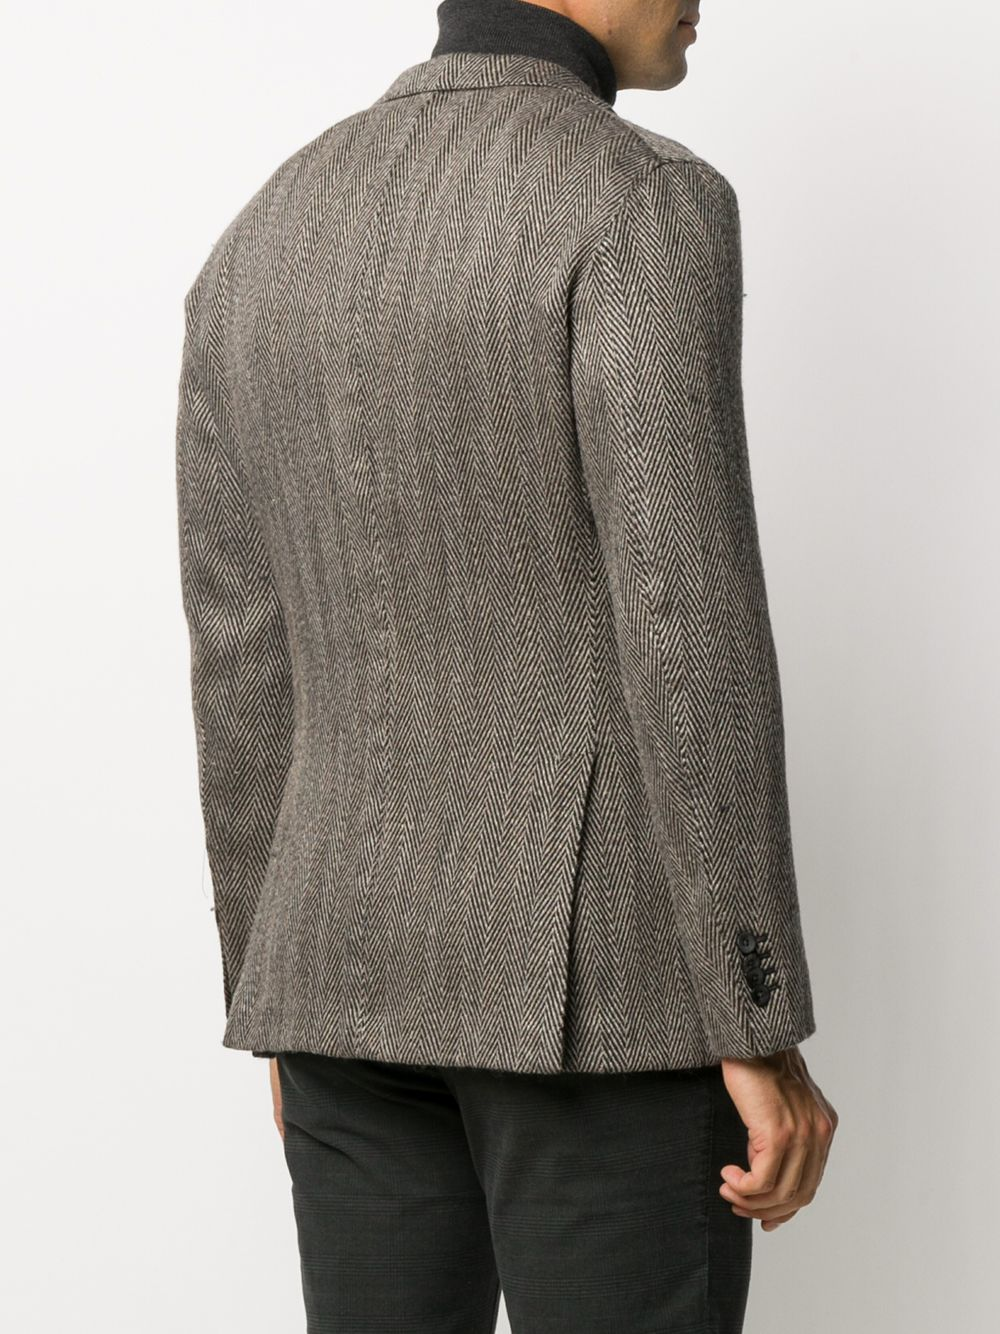 Gray herringbone wool and linen jacket with two buttons BOGLIOLI |  | N1302J-BSC4590409